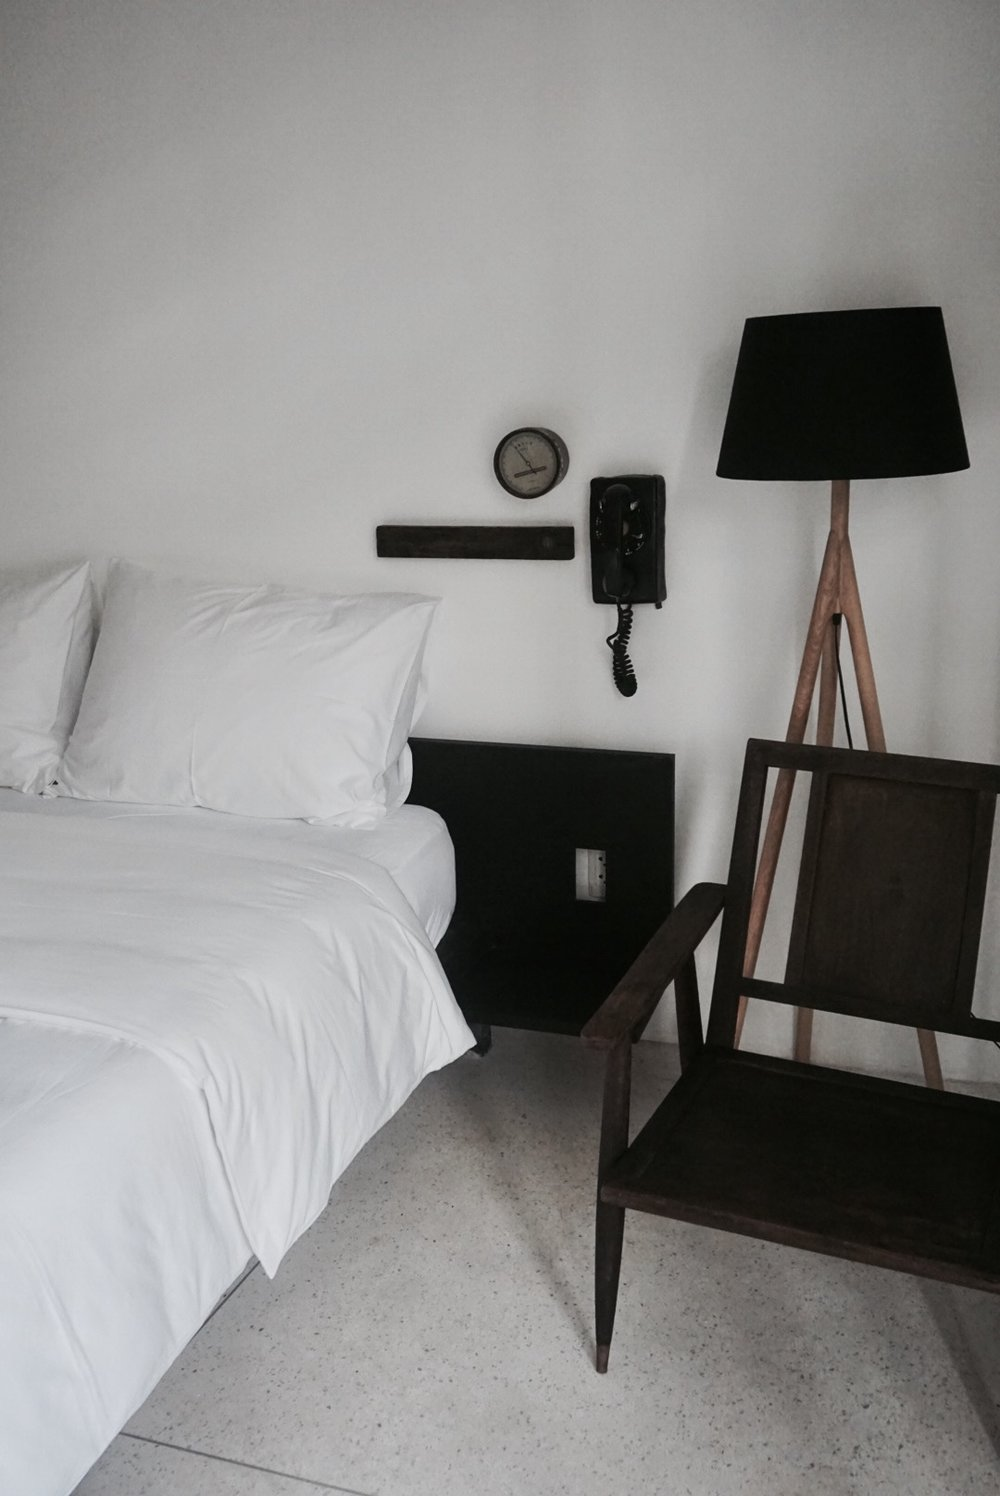 Airbnb apartment, The best place to stay in Ho Chi Minh City